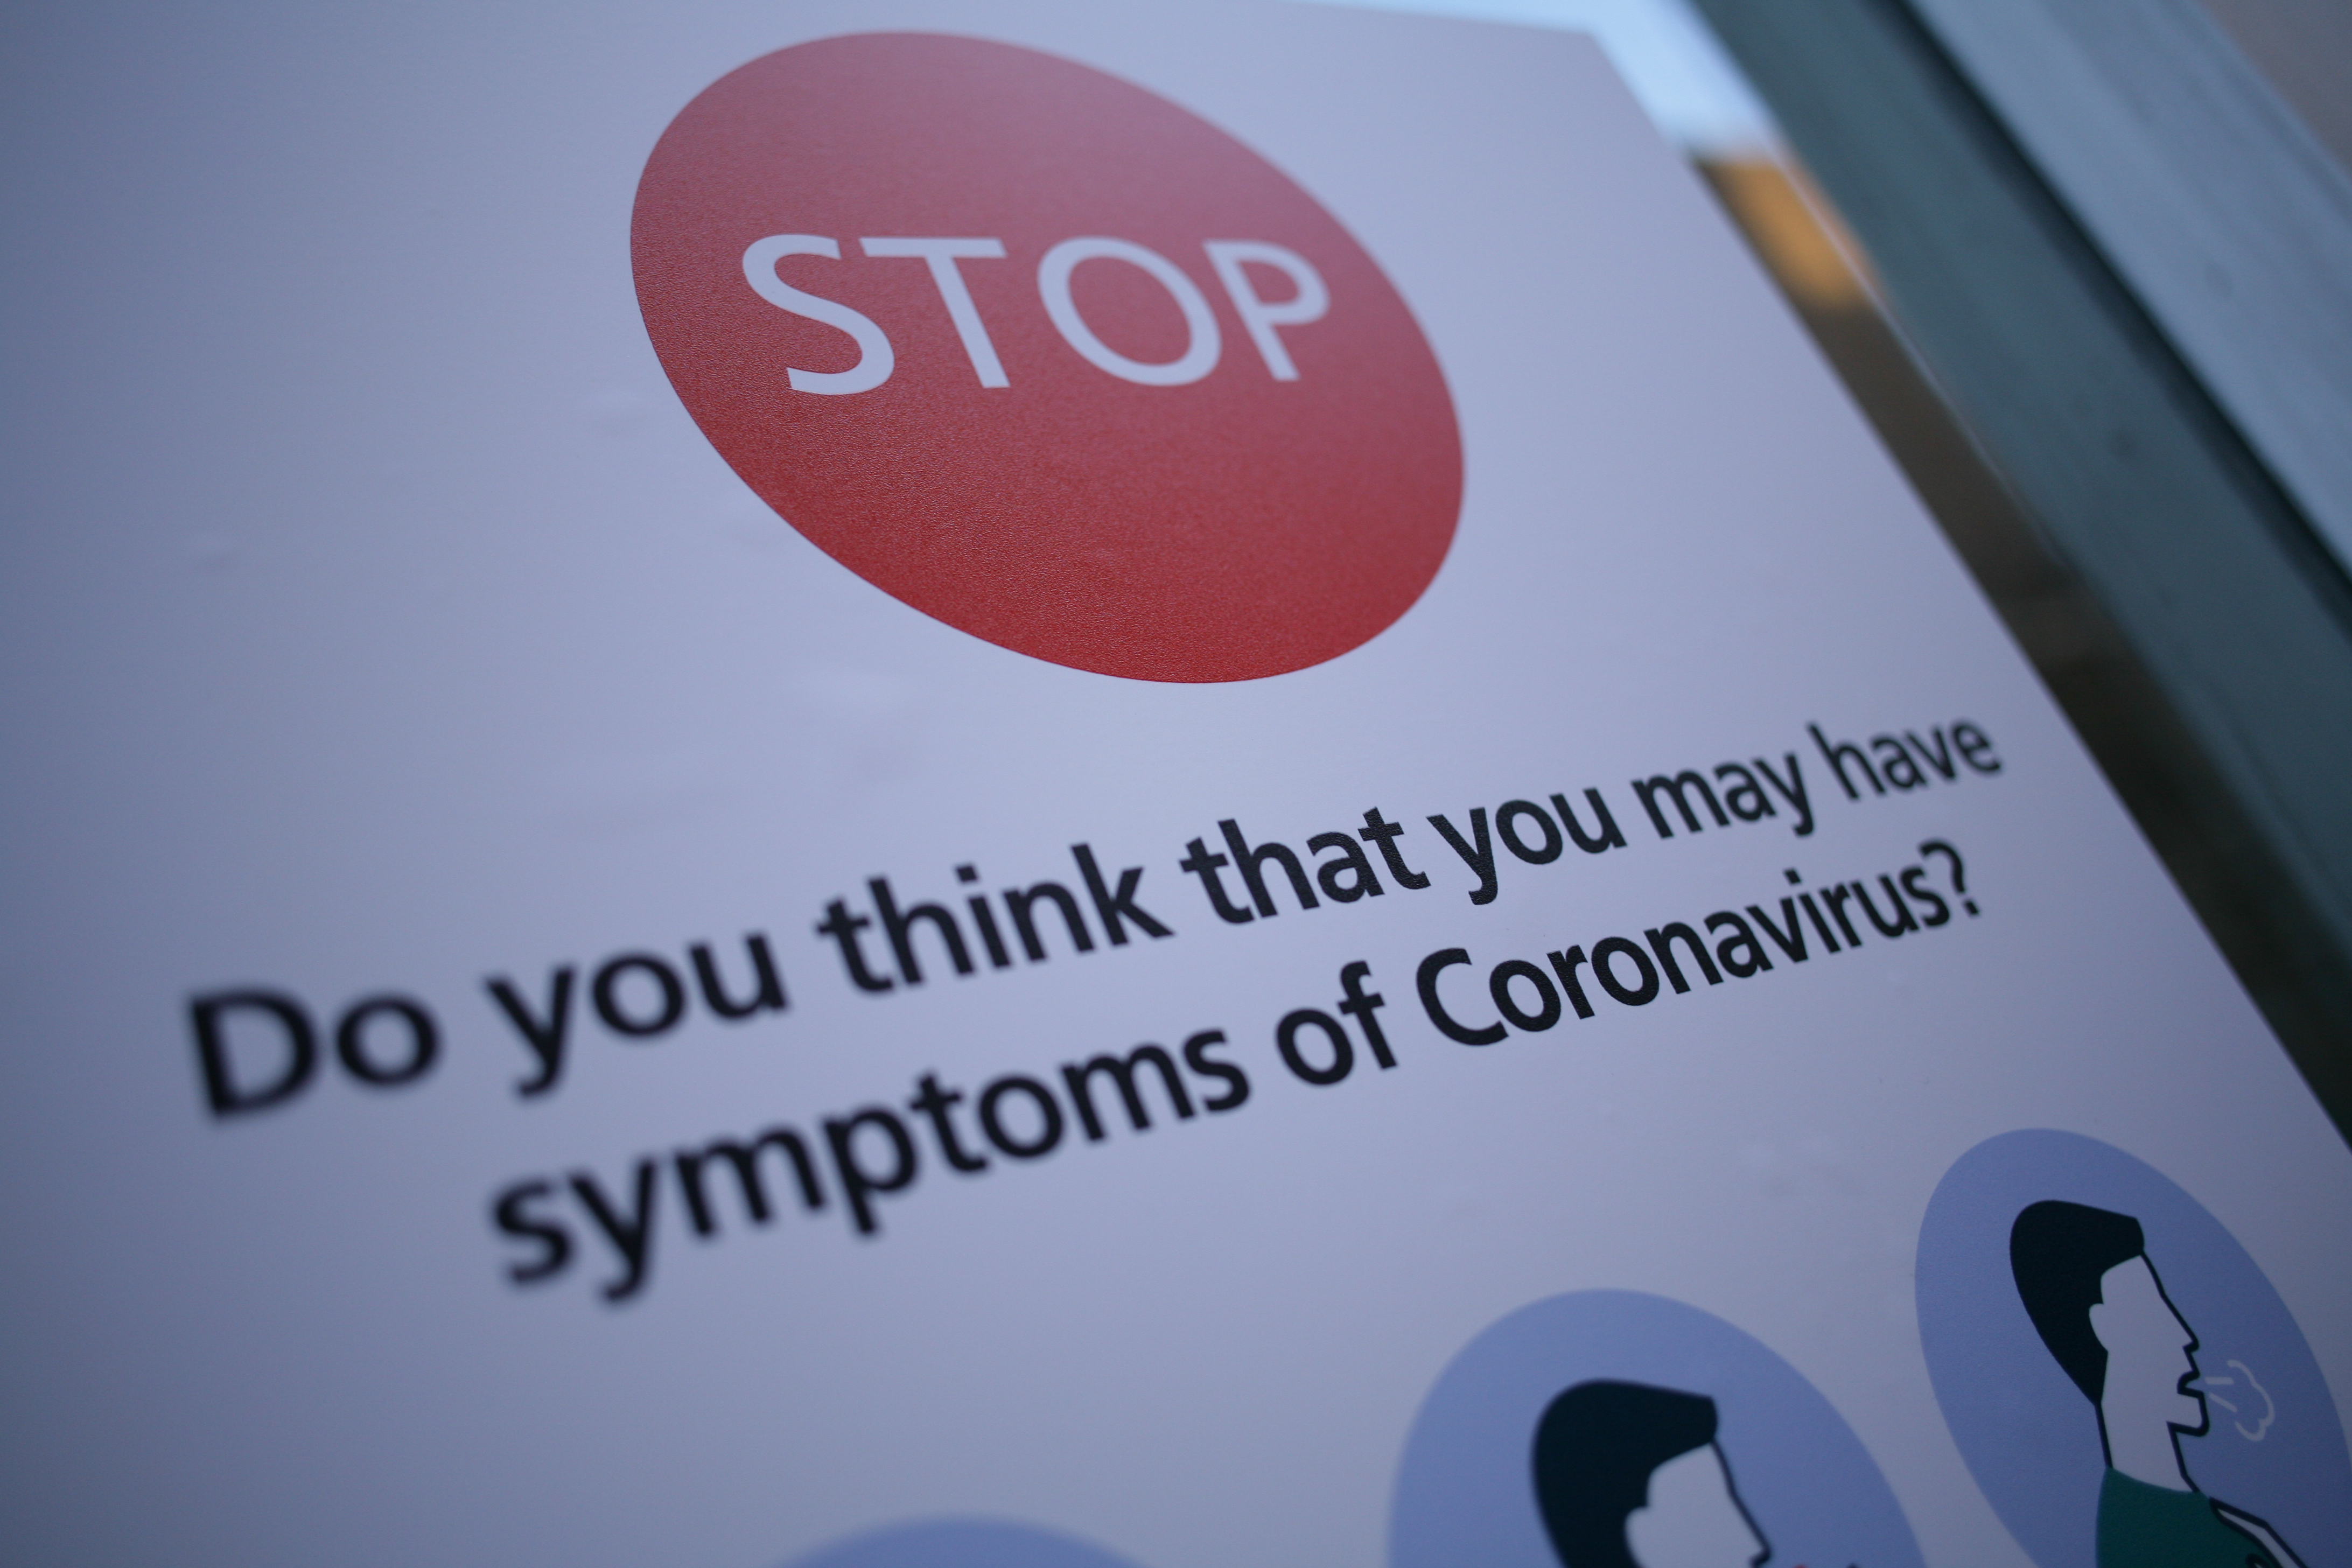 A notice instructs people with symptoms of the covid-19 coronavirus not to enter St Mary's Hospital in London, England, on March 11, 2020. The hospital houses a dedicated 'coronavirus pod' isolation unit for symptomatic patients. In the UK, 460 people have now been confirmed to have the virus. Six patients with coronavirus have so far died in hospitals around the country. The World Health Organisation (WHO) meanwhile today officially designated the global spread of the illness as a pandemic. (Photo by David Cliff/NurPhoto via Getty Images)